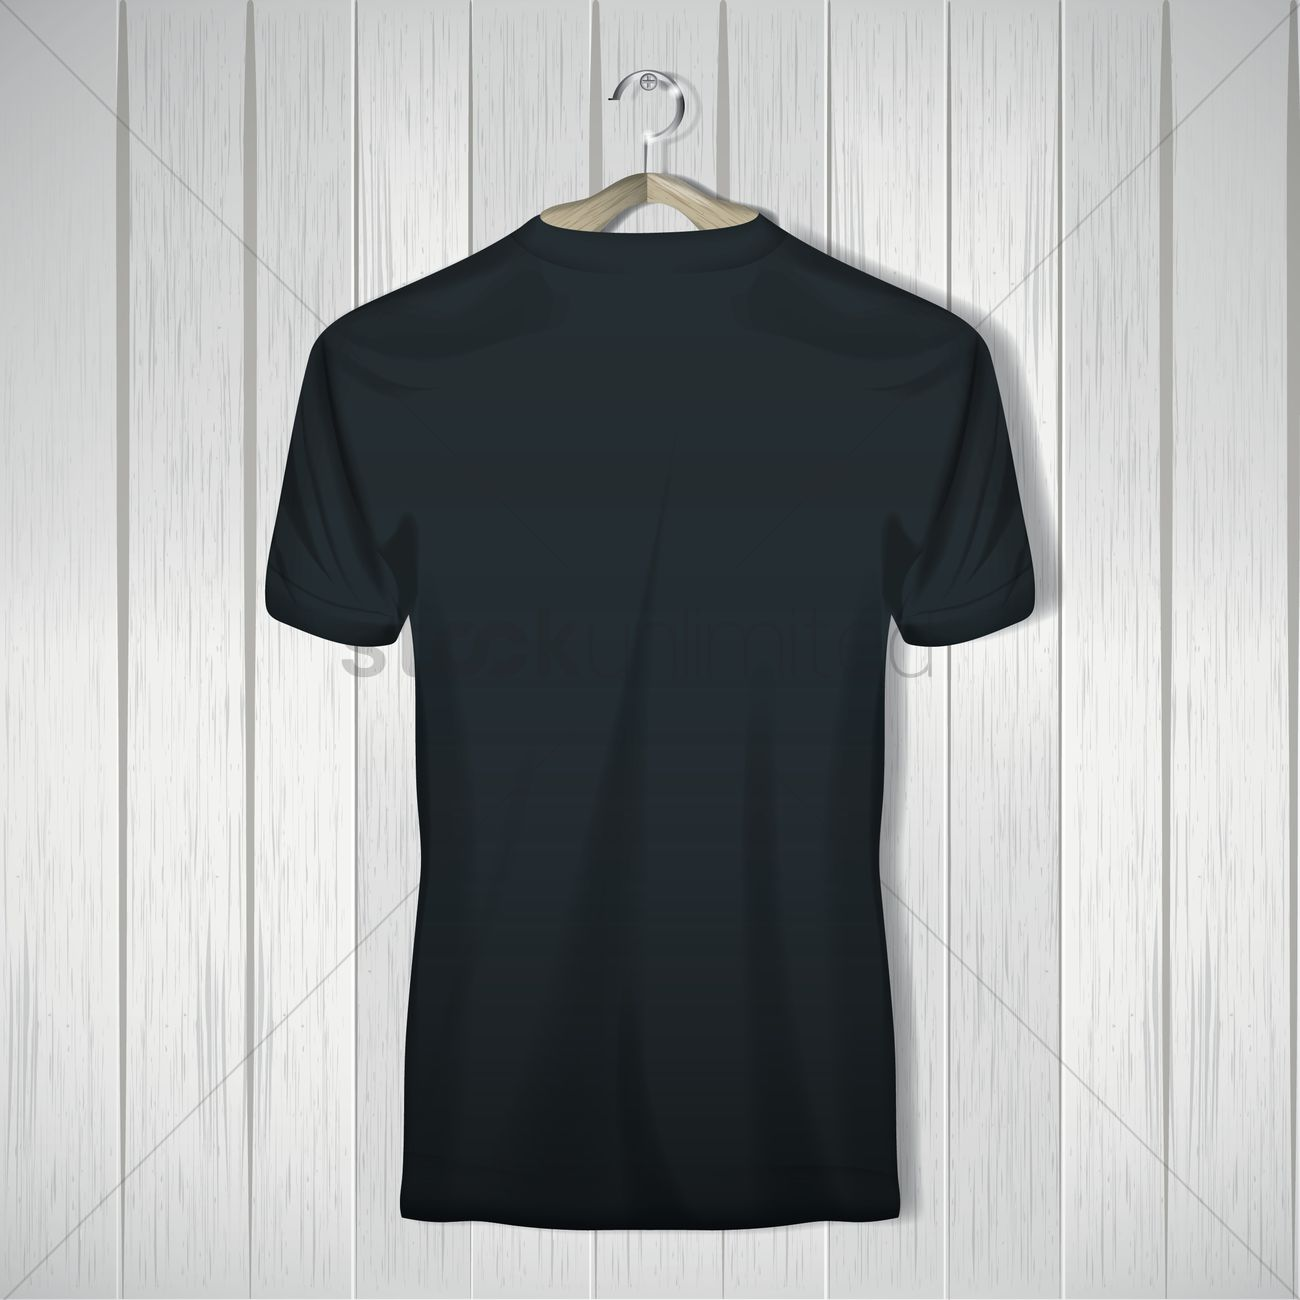 Black t shirt vector photoshop - T Shirt Vector Graphic